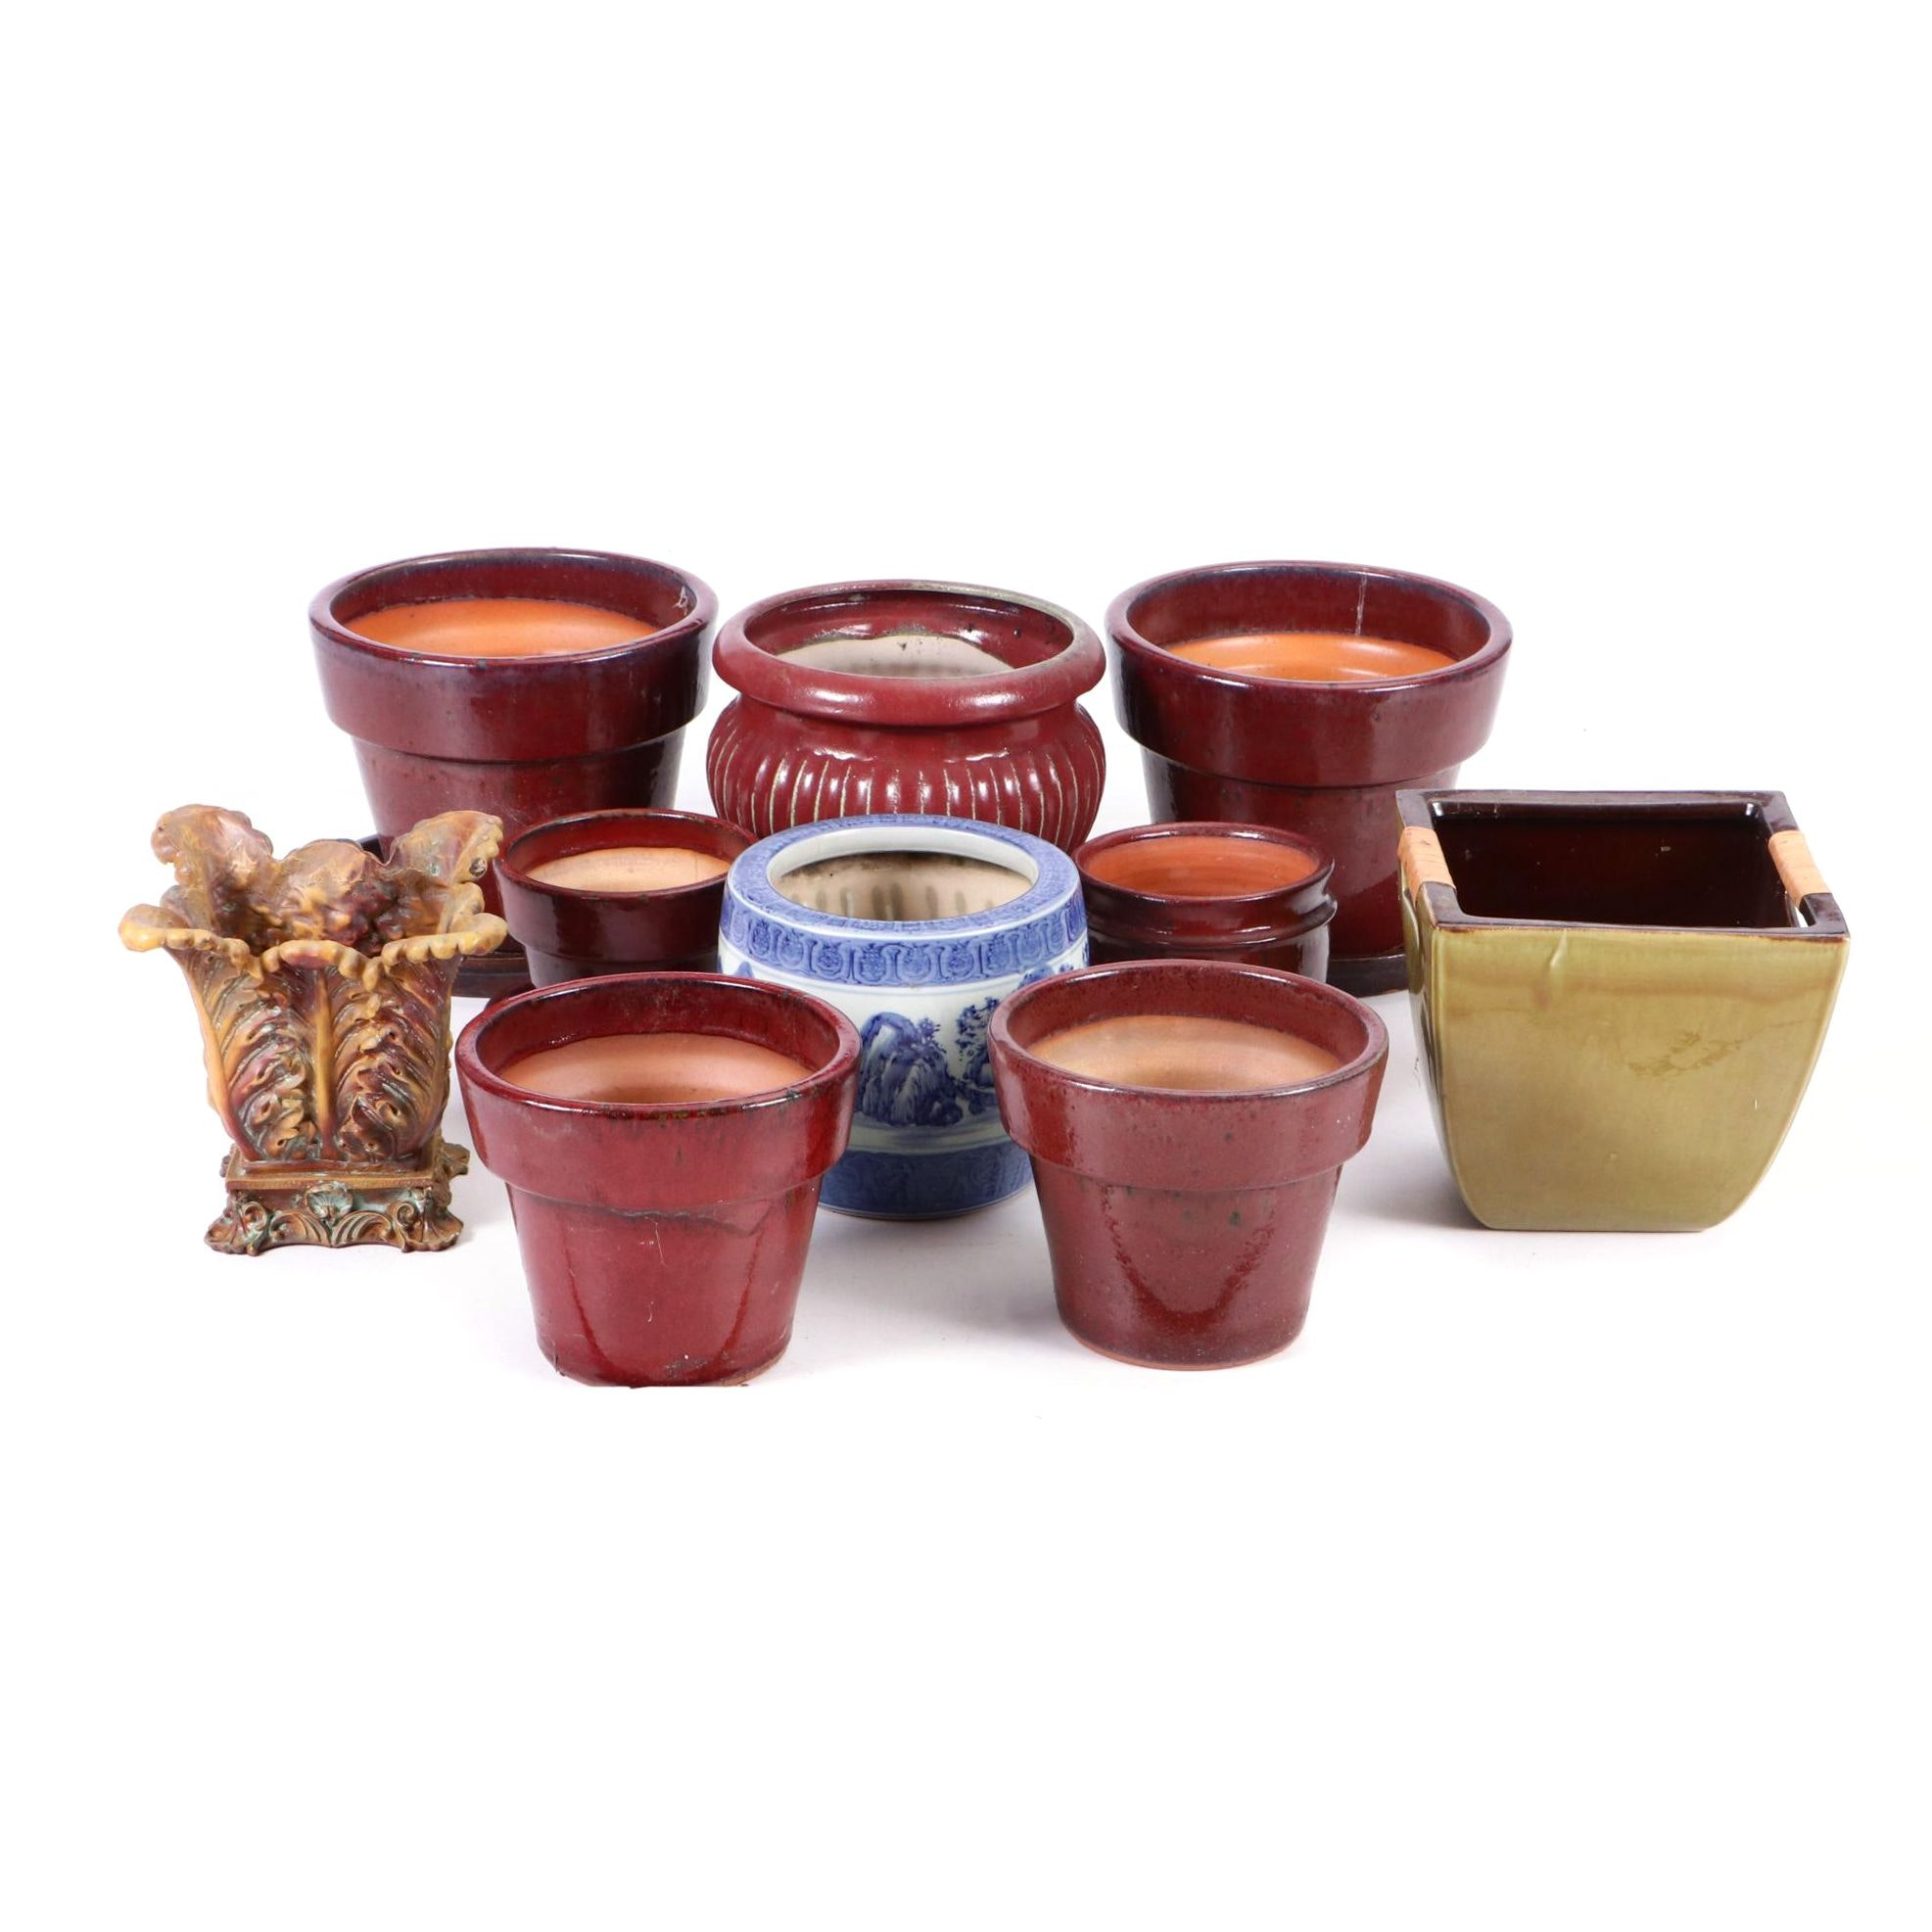 Grouping of Clay Pots